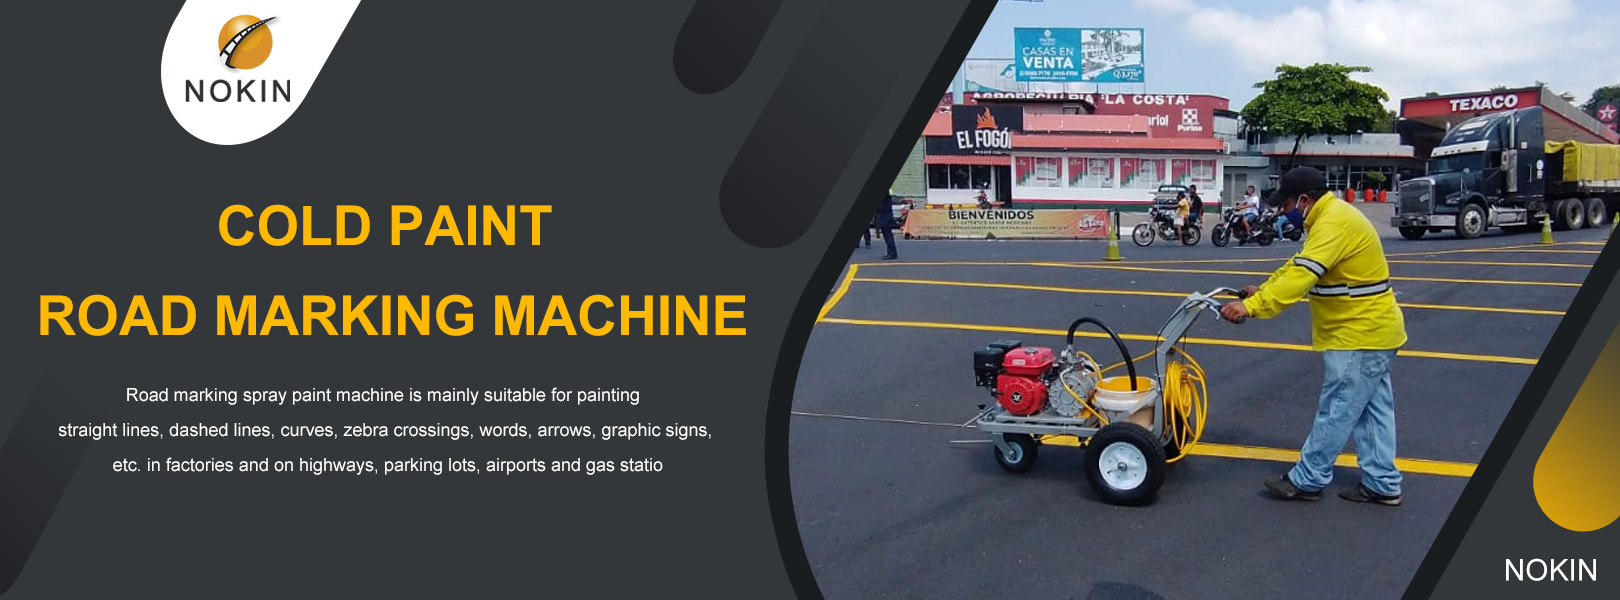 road marking machine supplier